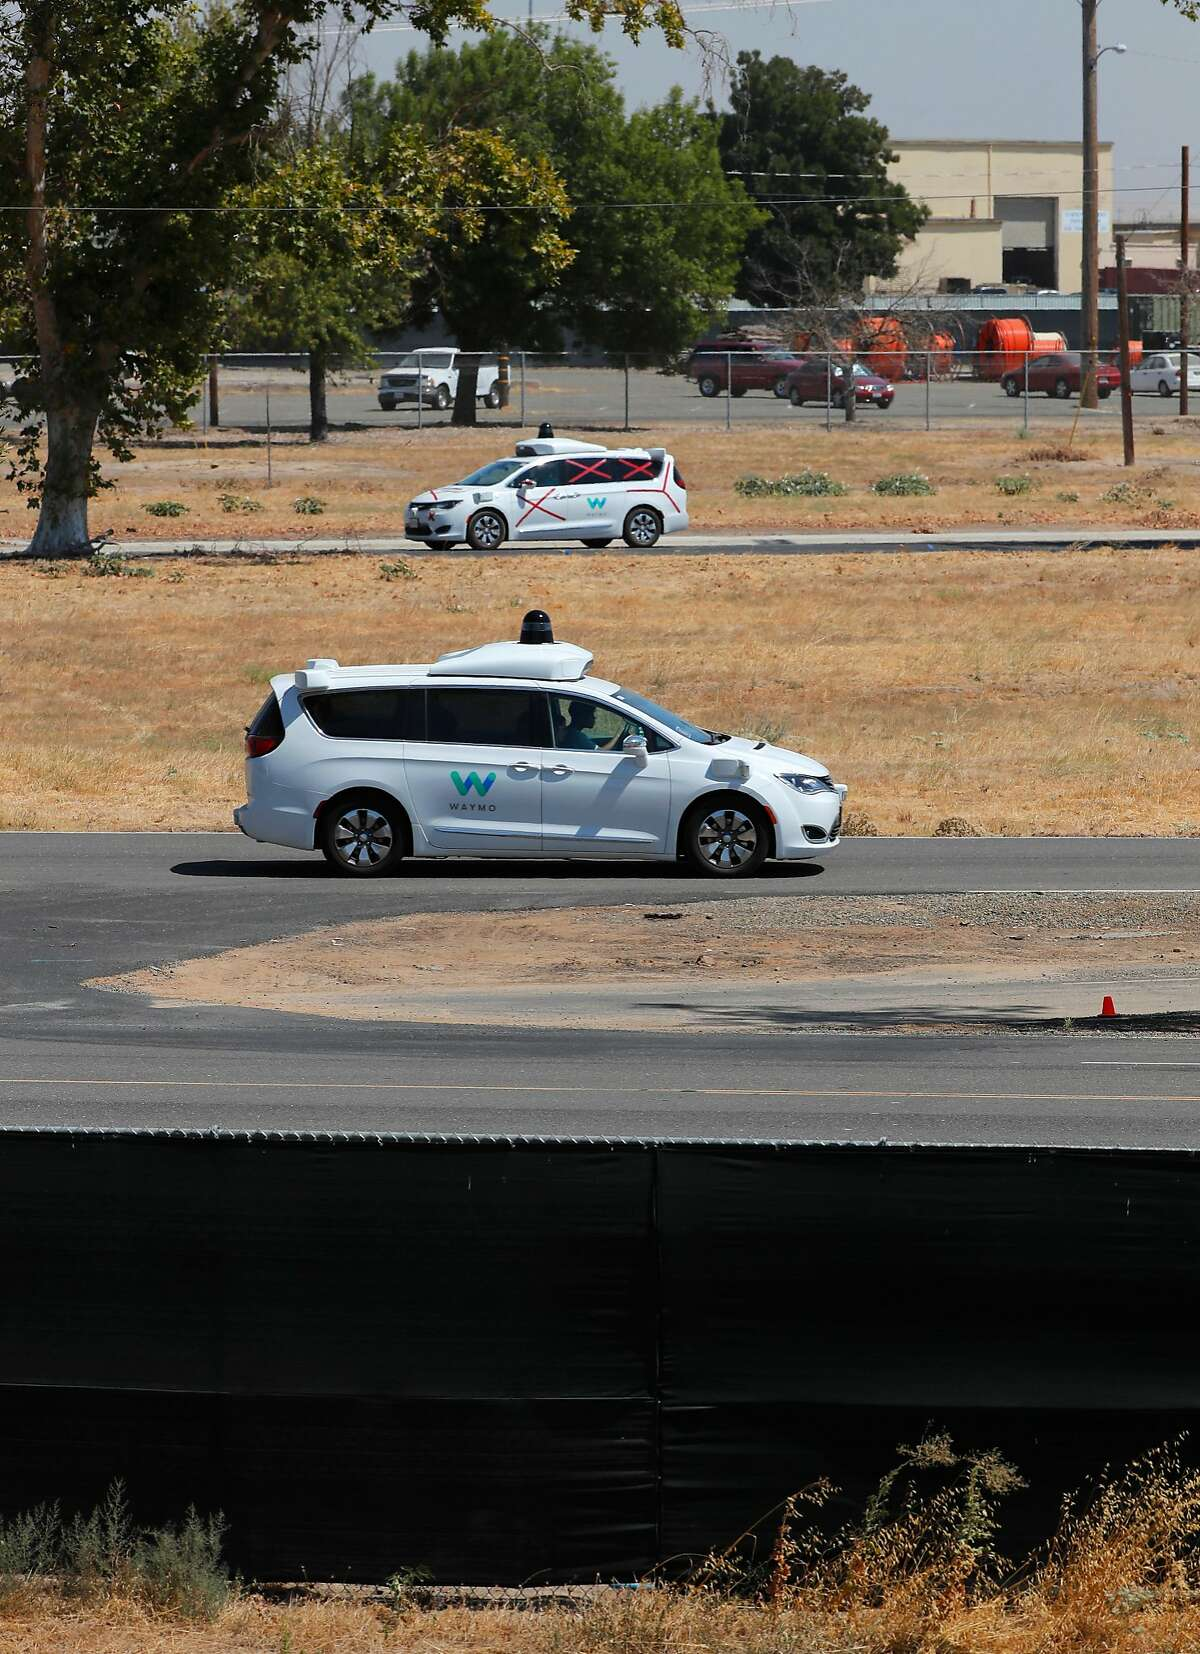 FILE-- Two Googgle Waymo autonomous vehicles navigate the roads inside their facility on the property of the now closed Castle Air Force Base, which is now a municipal airport in Atwater, Ca. on Thurs. August 31, 2017. A Waymo minivan on a test drive in Palo Alto was involved in a minor traffic accident in late August, with no injuries, according to a report the company filed with the state.